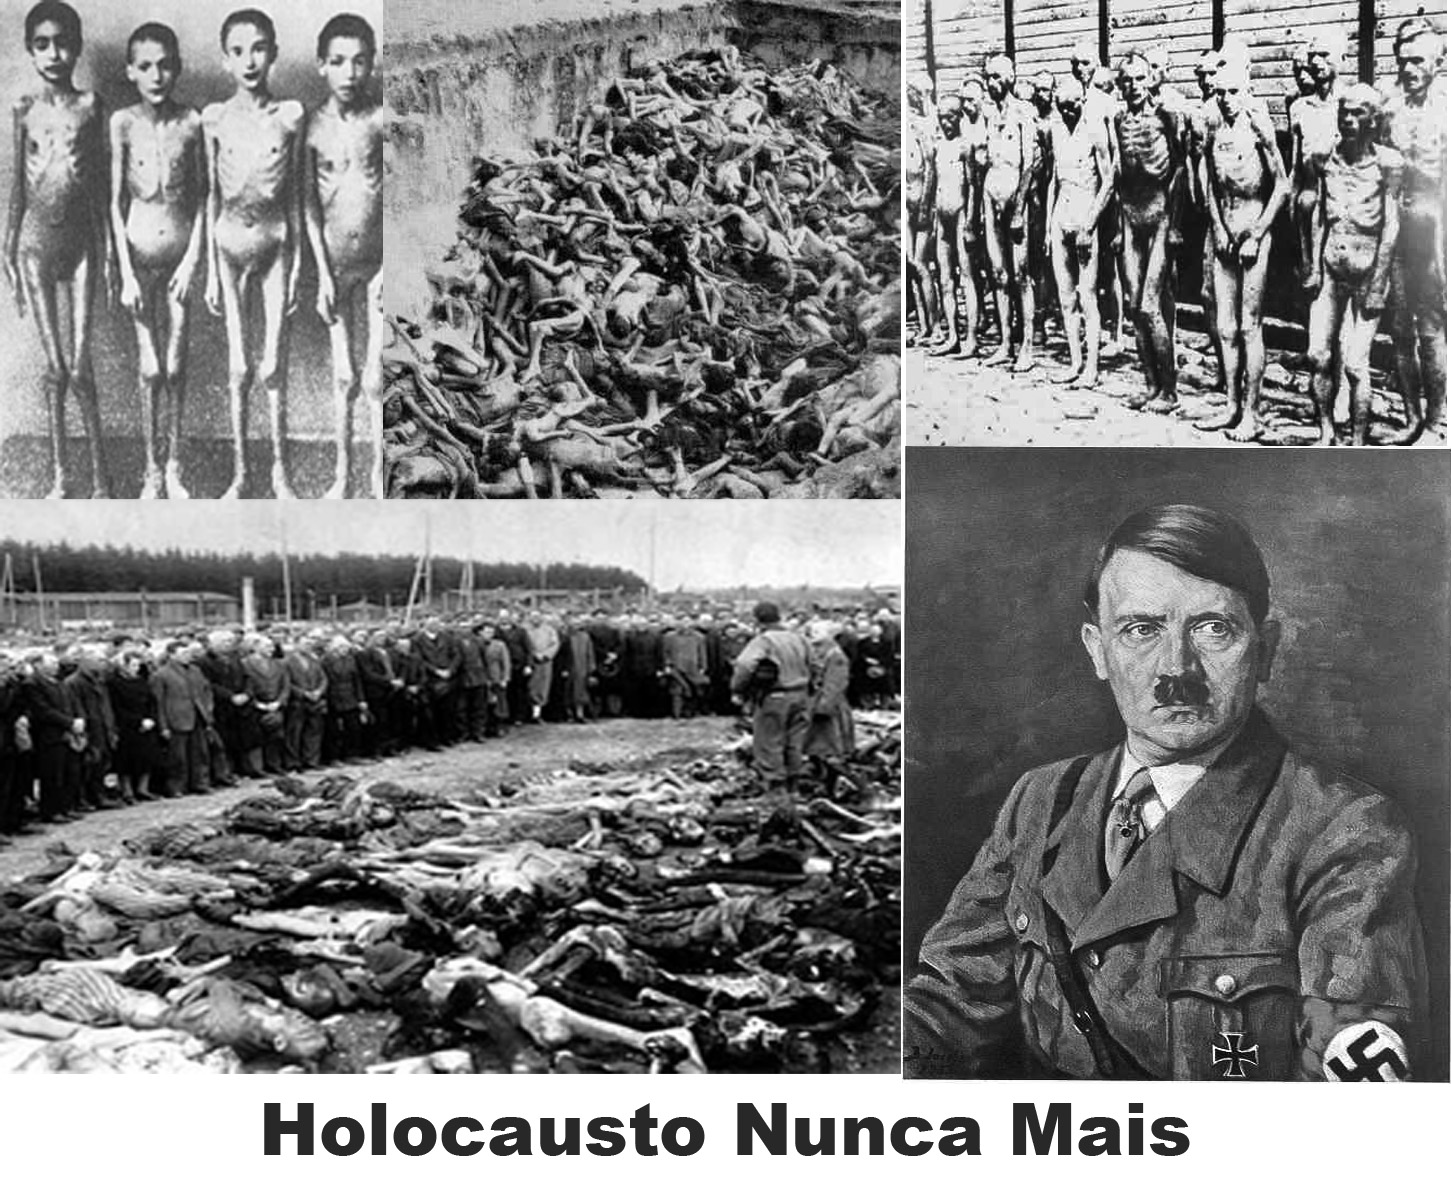 holocausto-copia.jpg